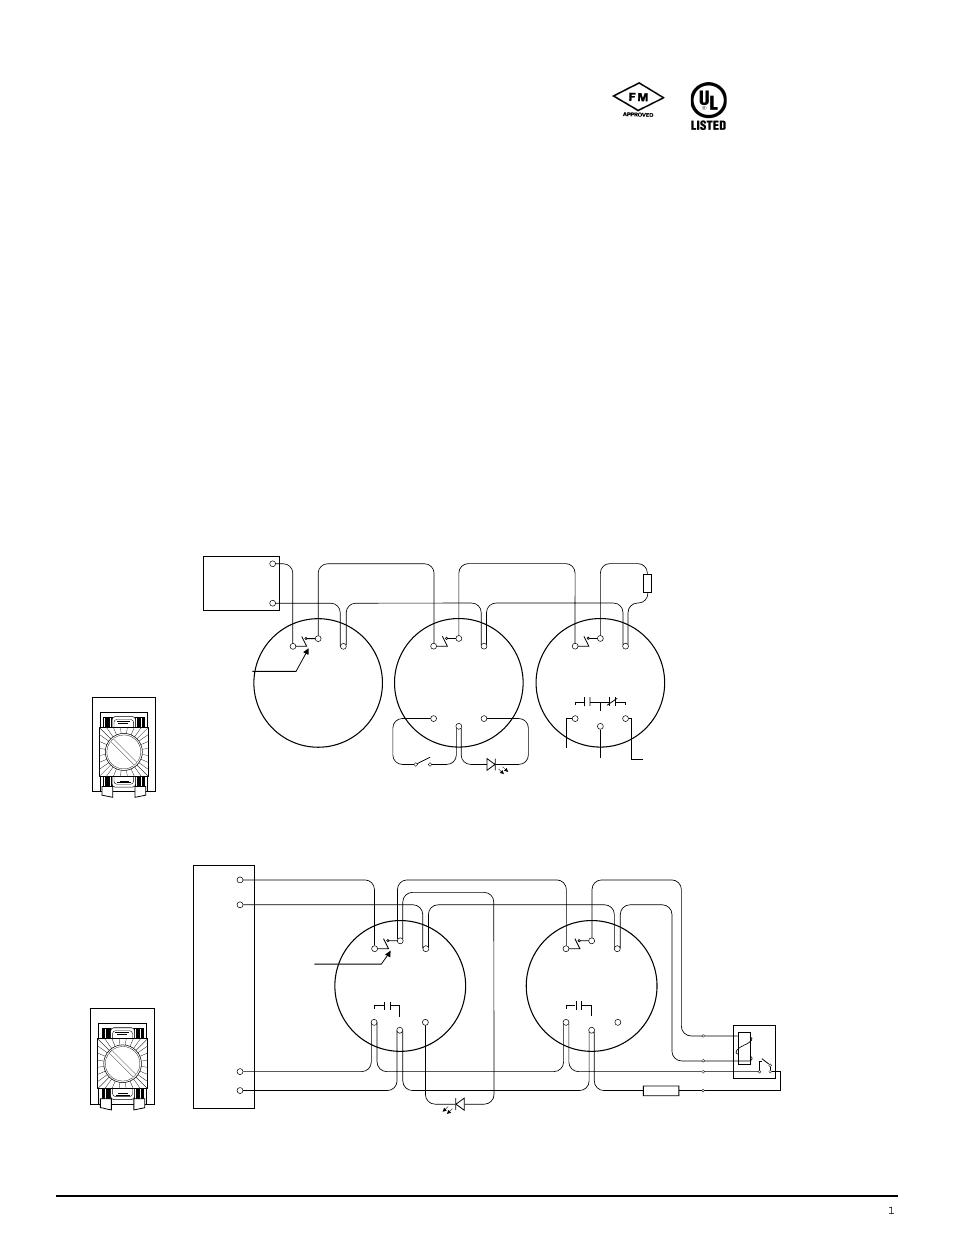 medium resolution of edwards signaling esl 700 series user manual 4 pages rh manualsdir com simplex smoke detector wiring diagrams hvac smoke detector wiring